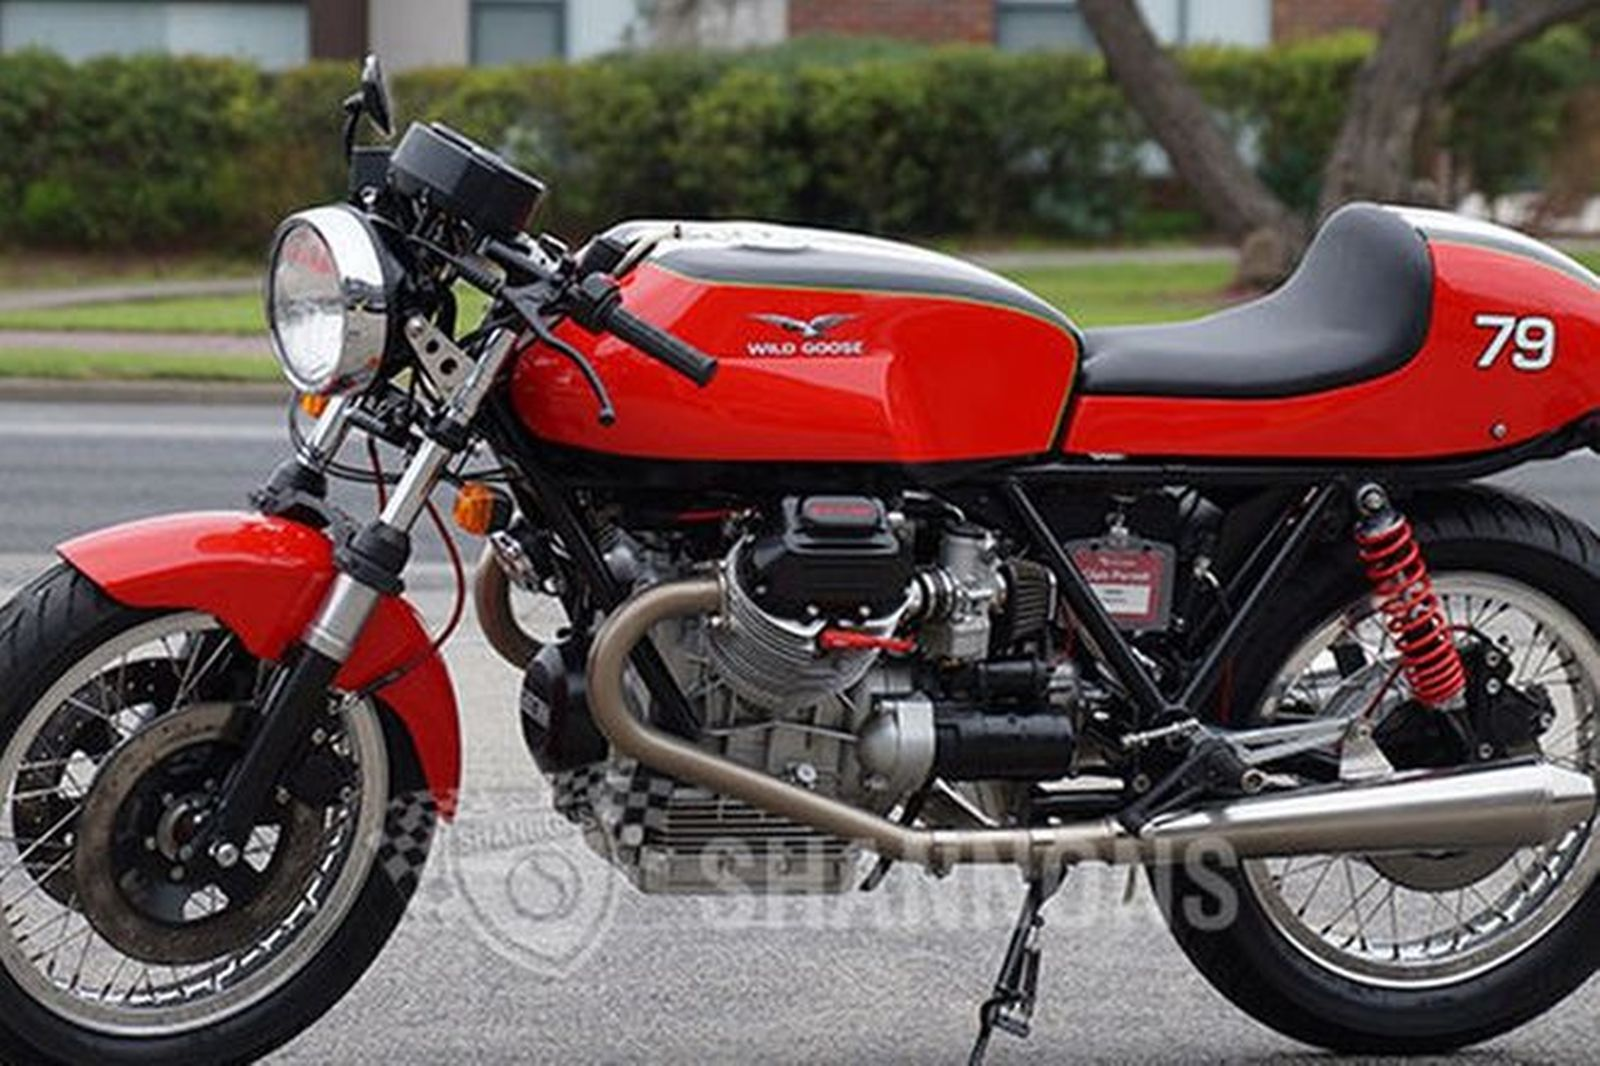 moto guzzi g5 1000cc cafe racer motorcycle auctions lot 11 shannons. Black Bedroom Furniture Sets. Home Design Ideas